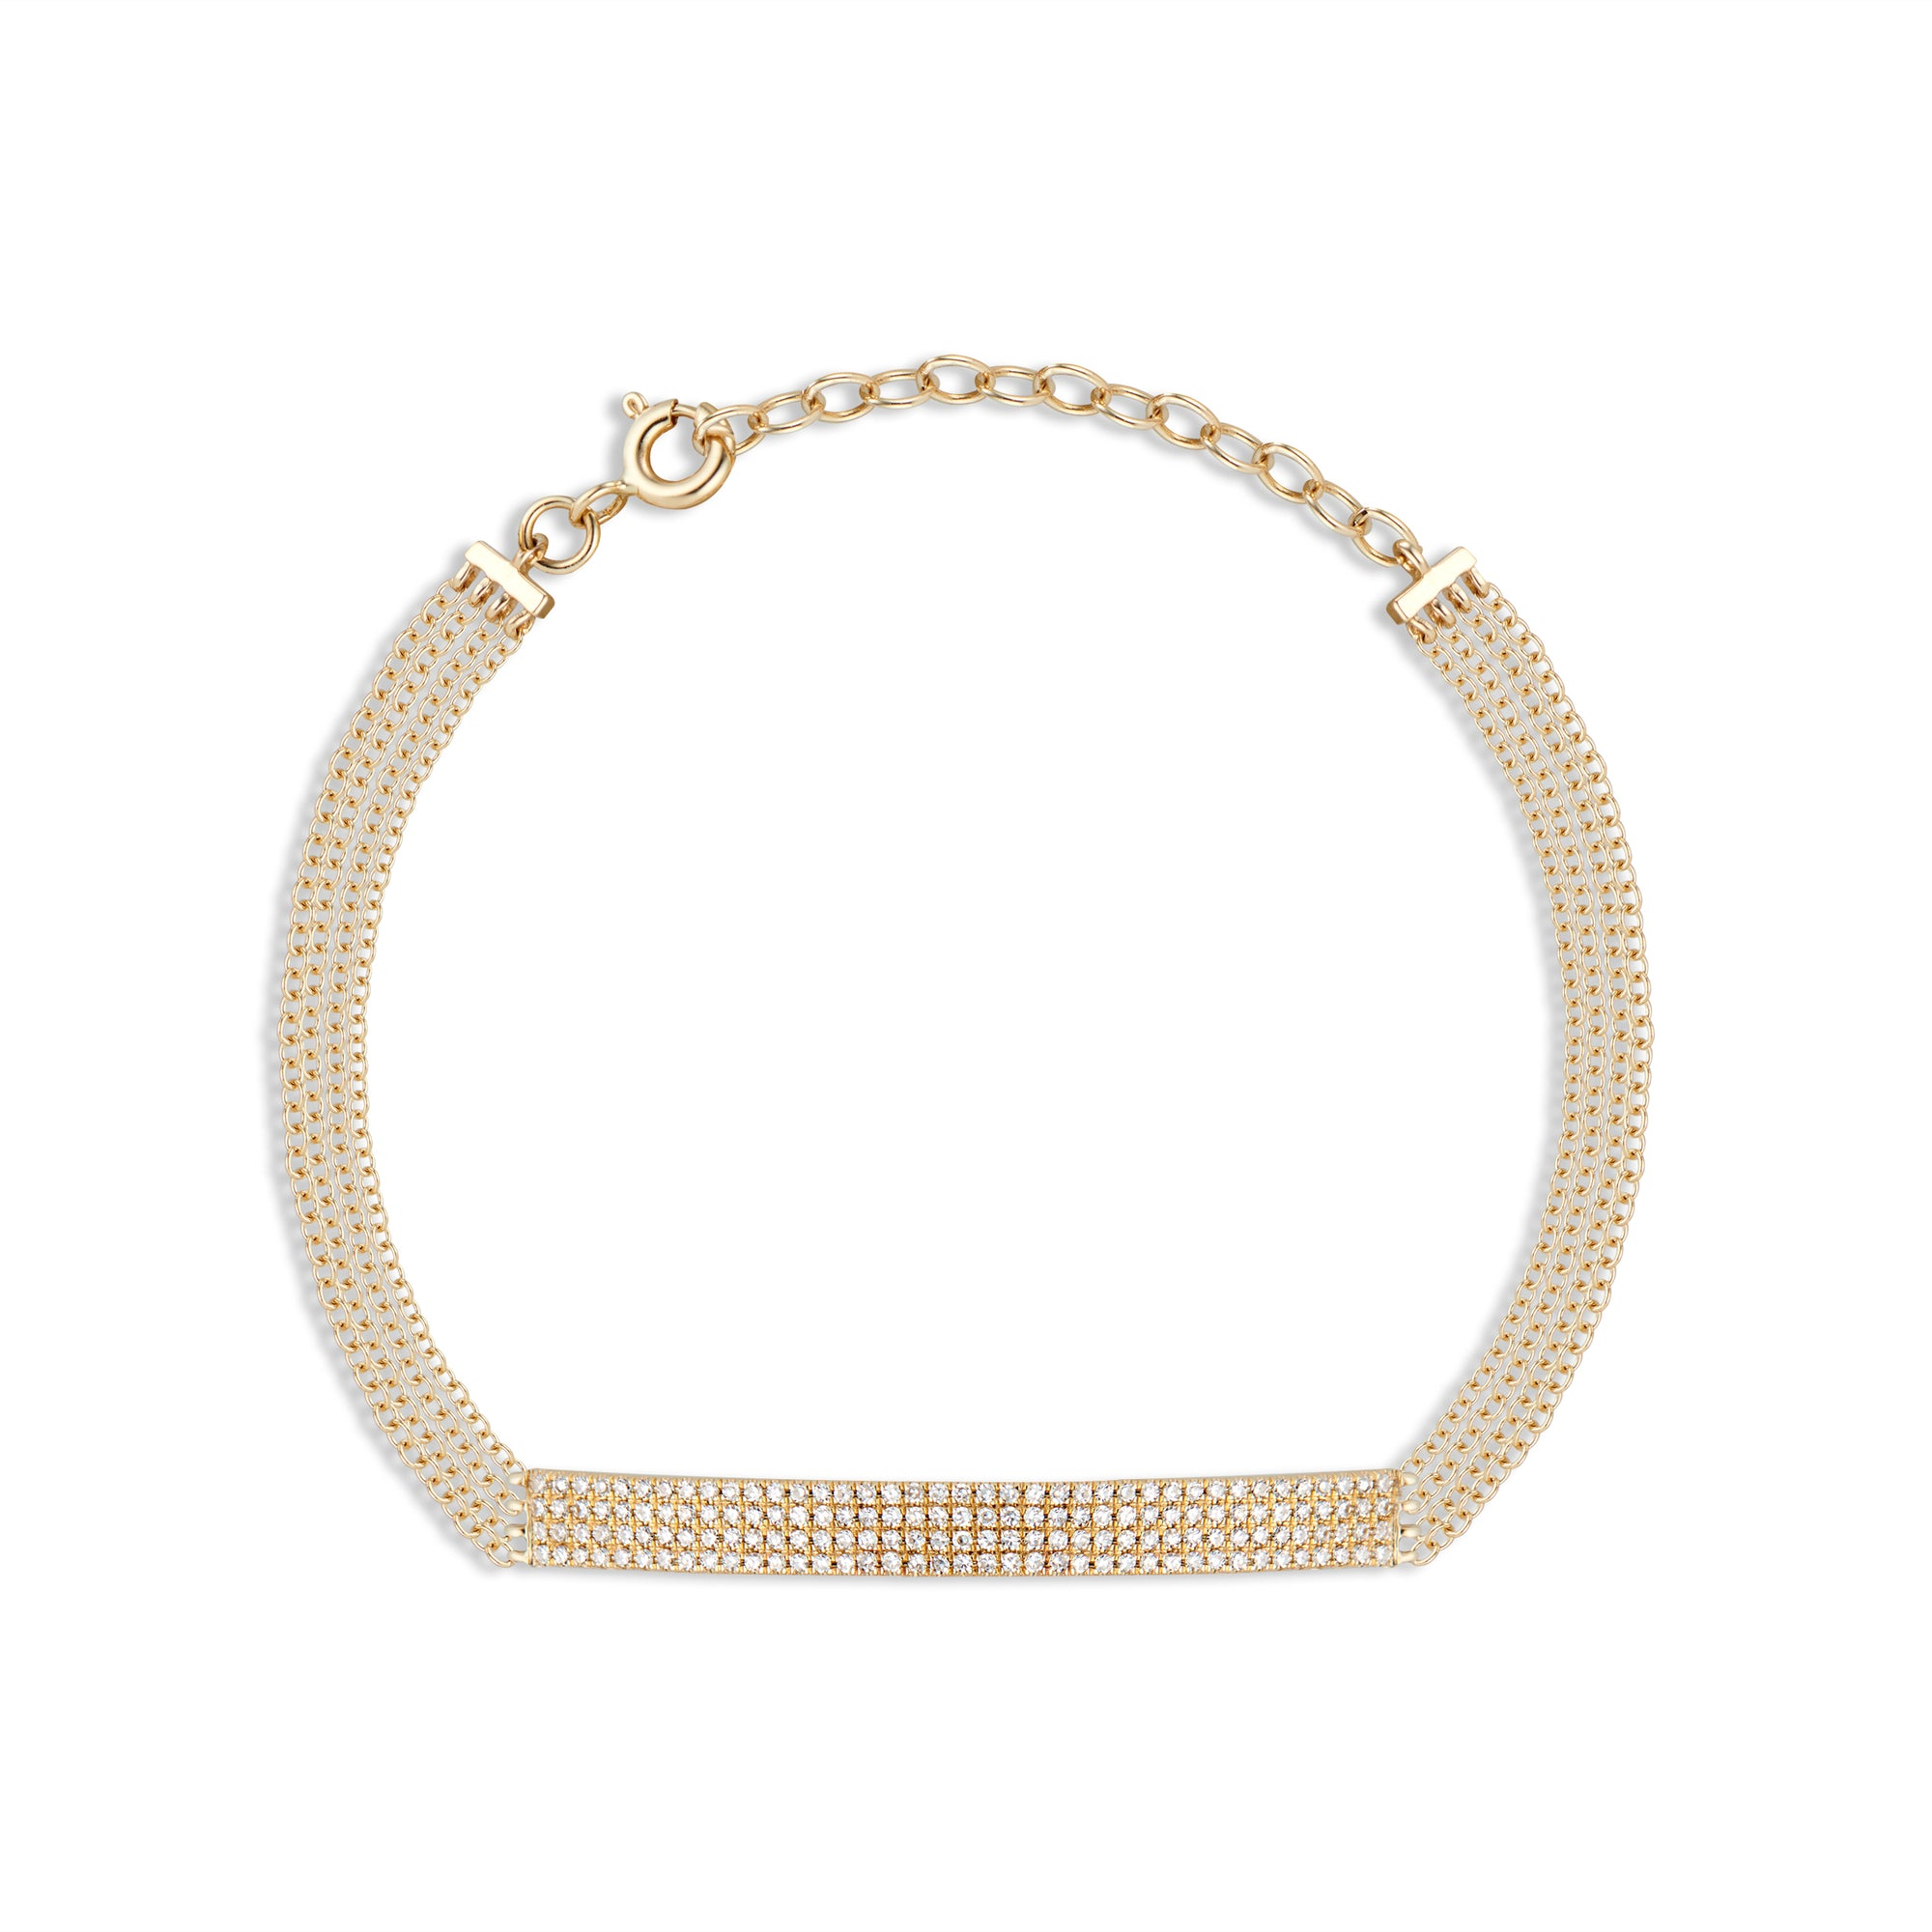 Quadruple Cable Chain Bracelet with Diamond Bar